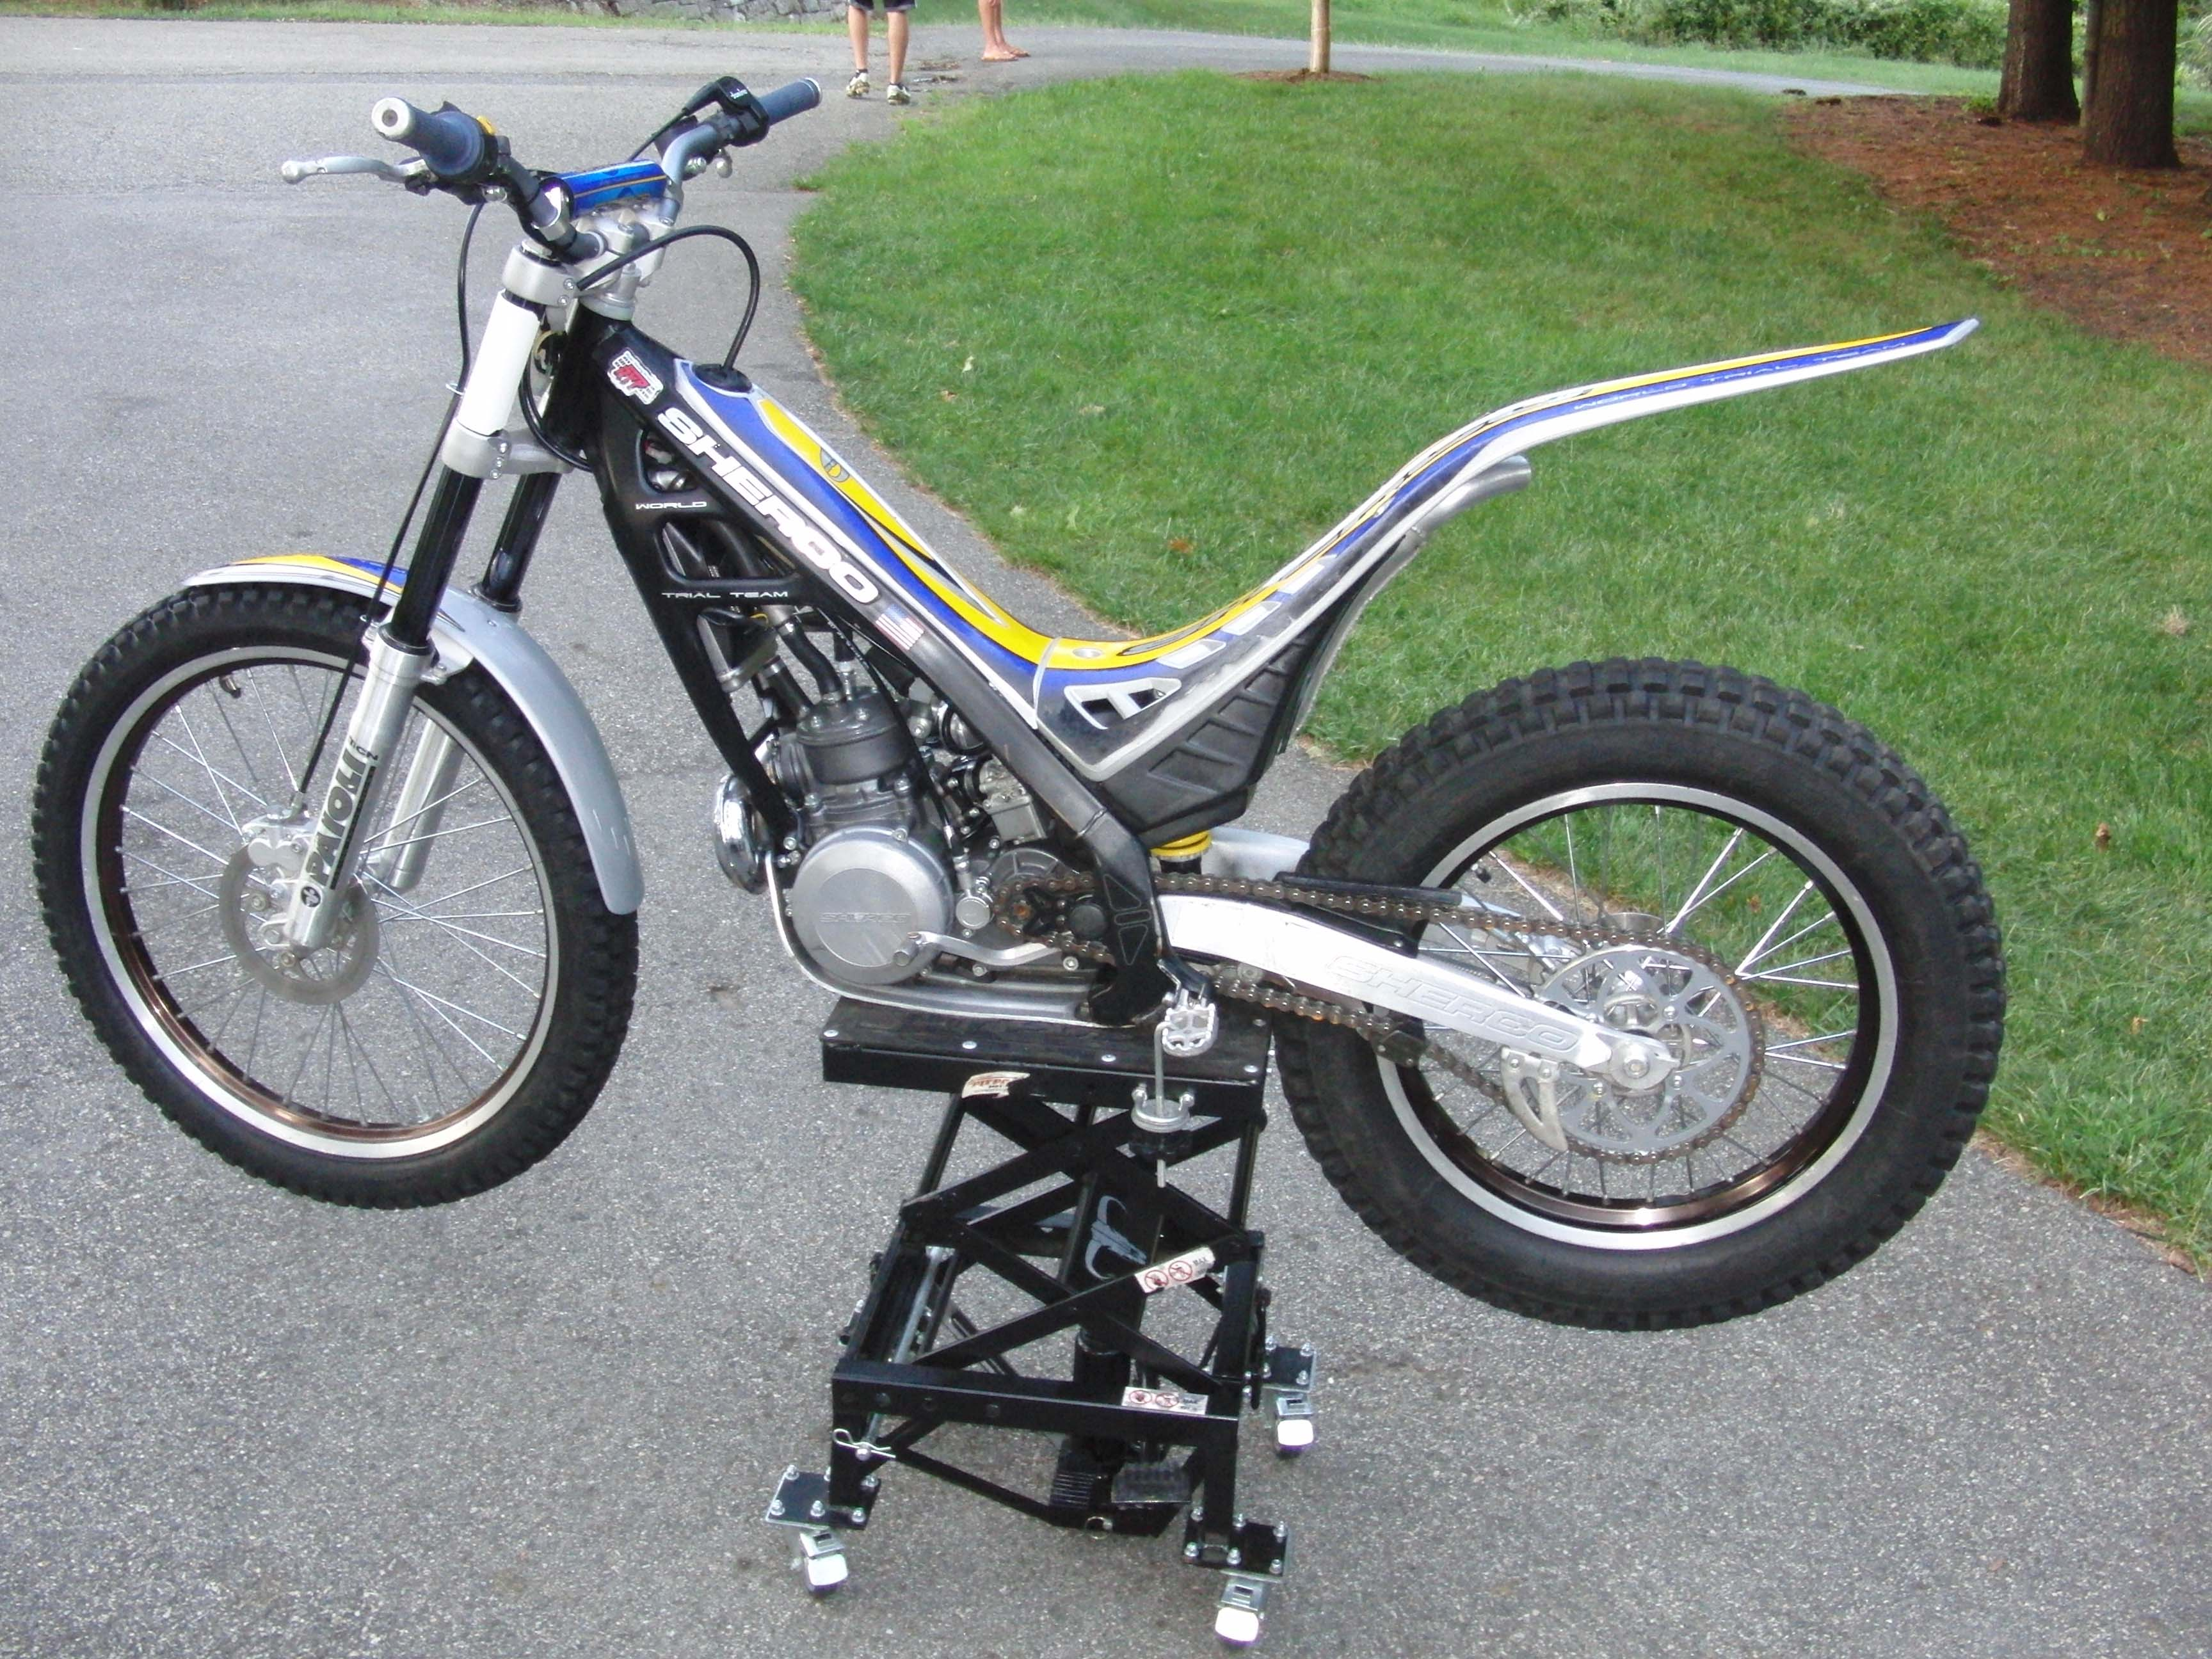 Sherco 2.9 Cabestany Replica images #158814